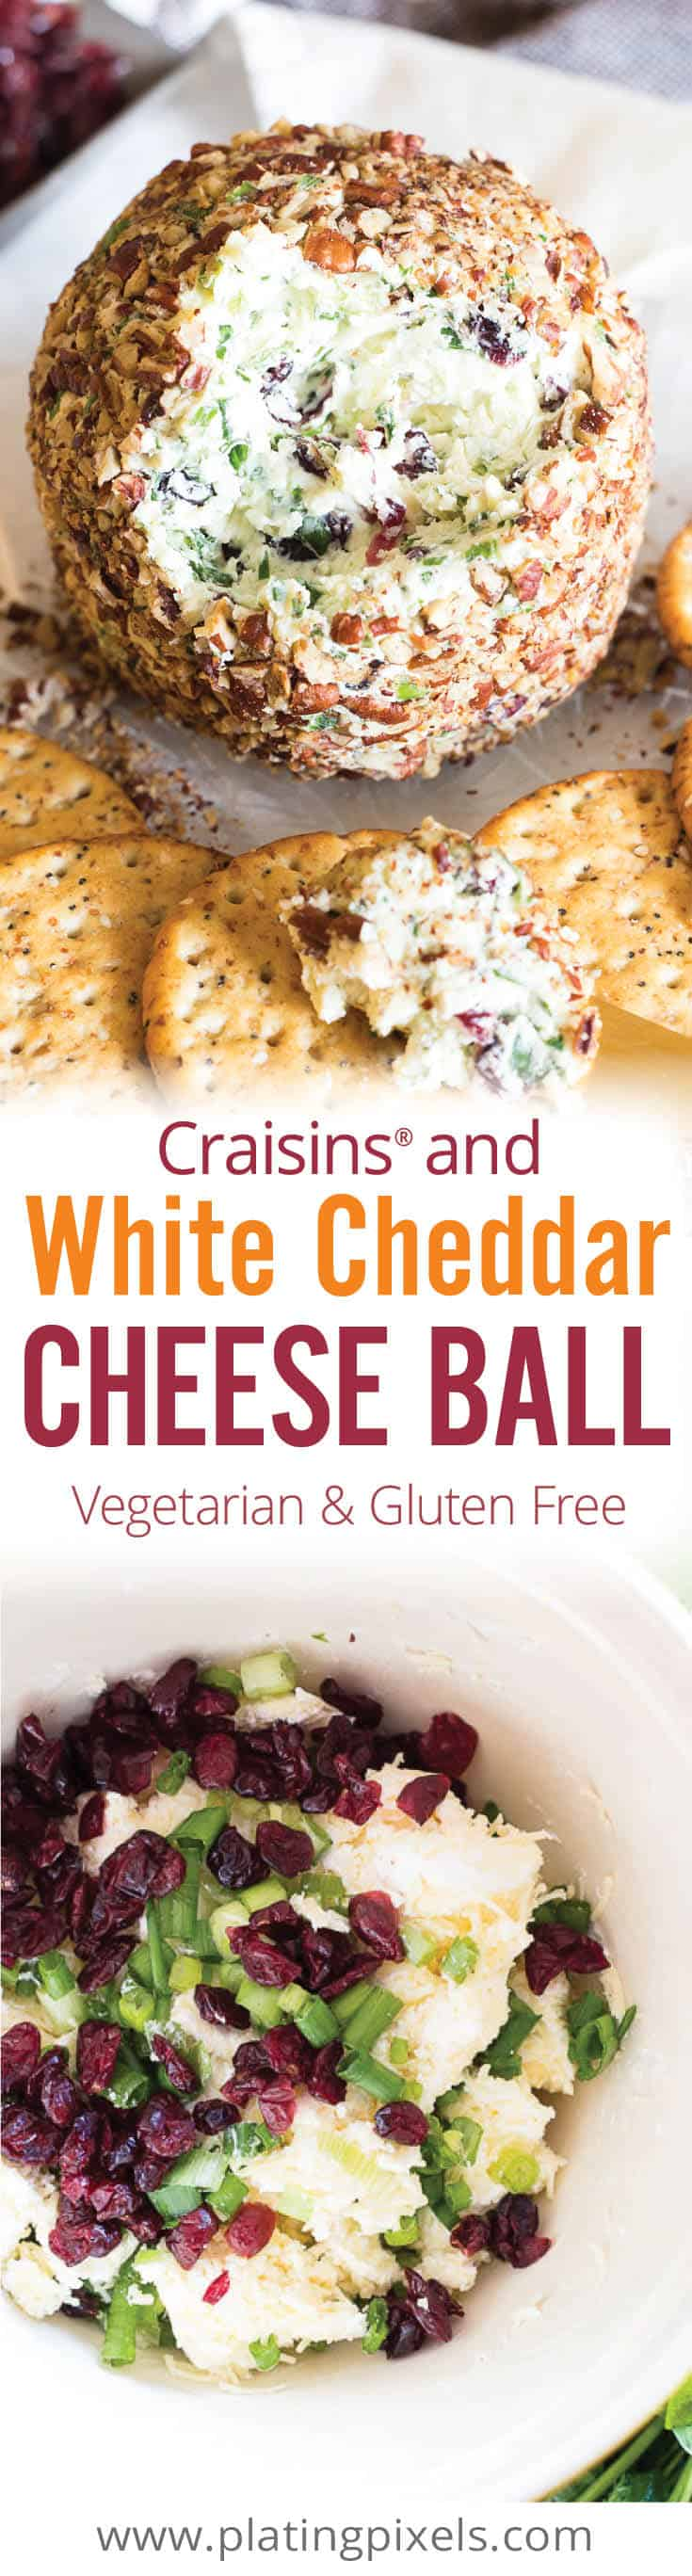 Quick and easy gluten free party appetizer. Craisins White Cheddar Cheese Ball made with white cheddar, cream cheese, dried cranberries, herb, spices and toasted pecans. Plus you'll learn a quick trick to soften butter or cream cheese. #platingpixels #appetizers #cheese #cheeseball #christmasrecipes